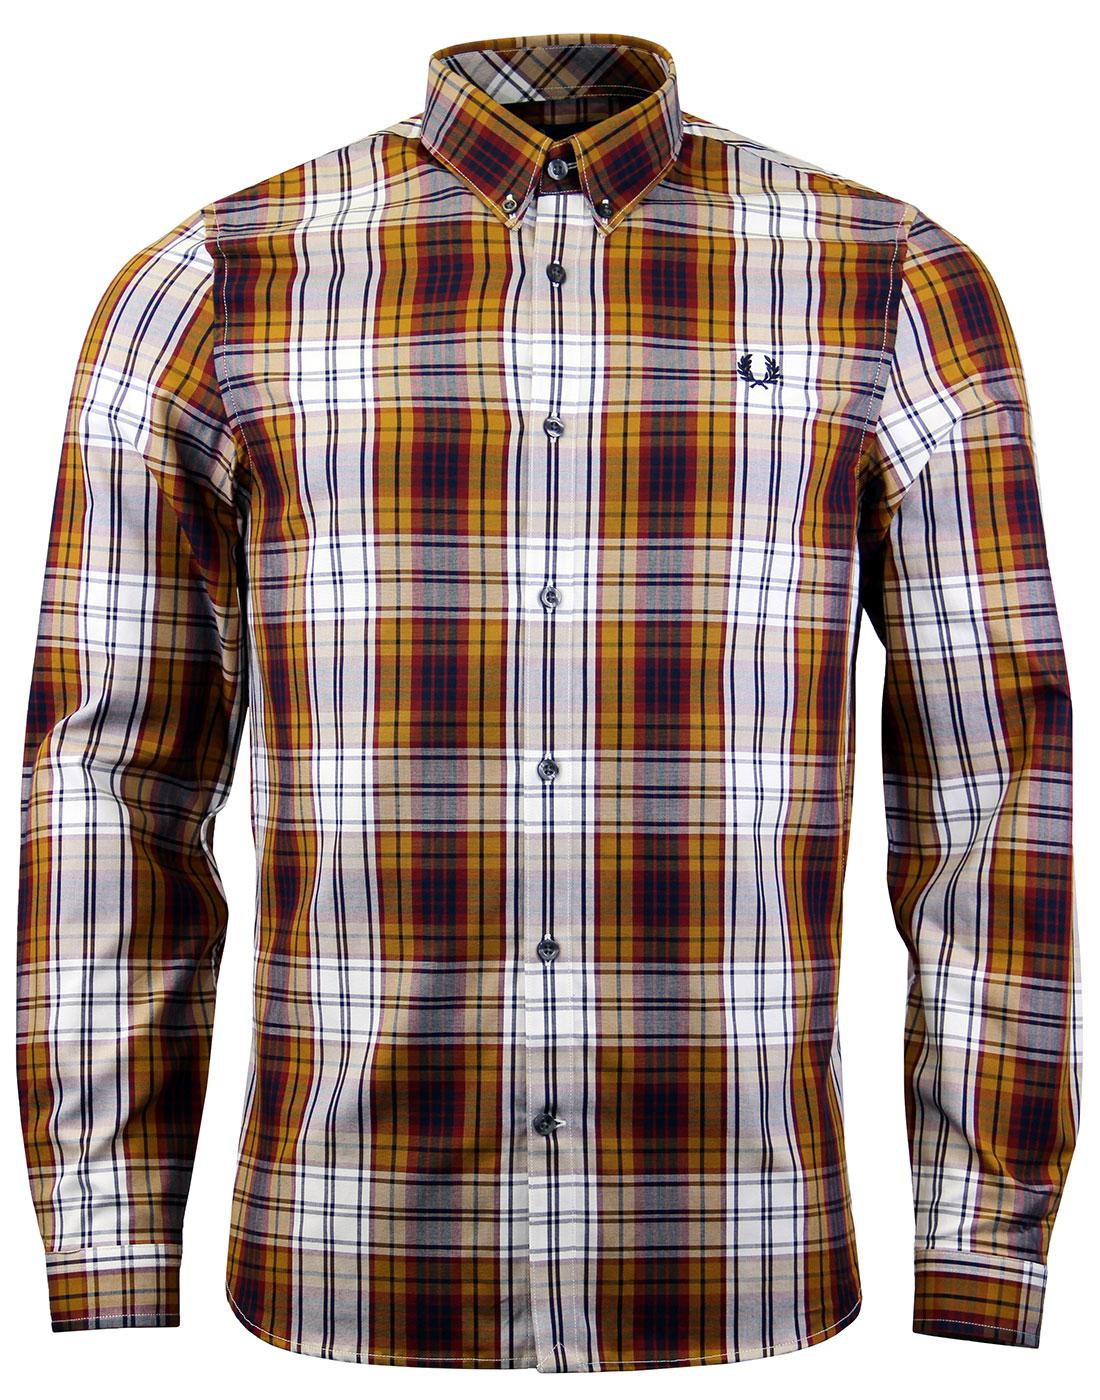 FRED PERRY Retro Mod Bold Tartan Check Shirt (Mu)